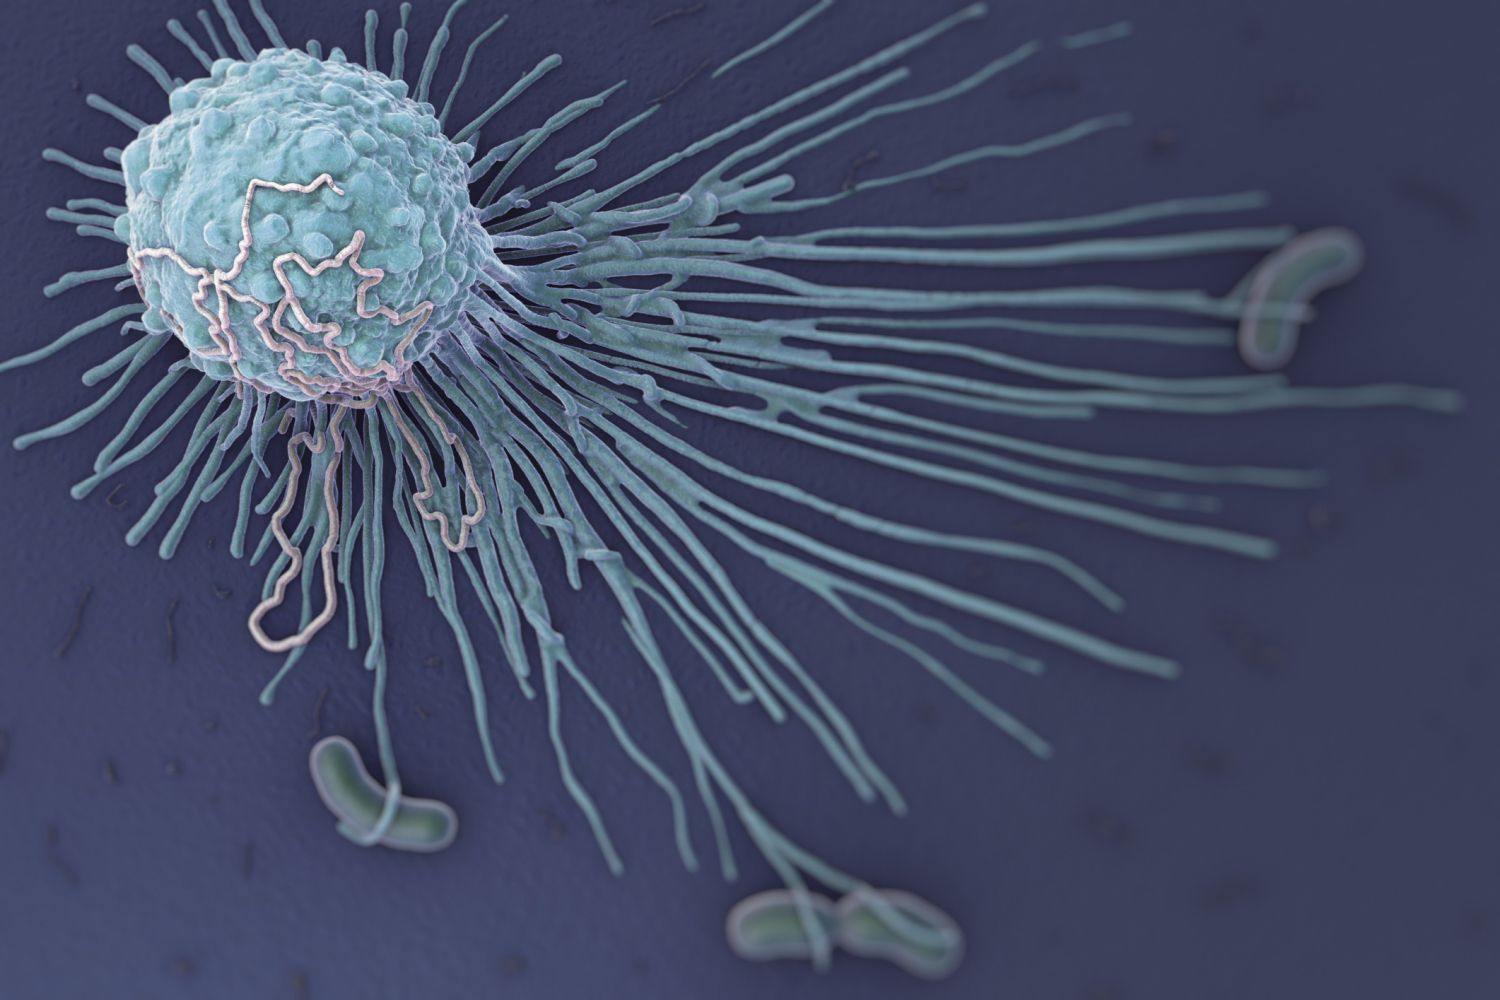 This close up shows a macrophage cell and bacteria. Macrophages are white blood cells that engulf and digest pathogens.